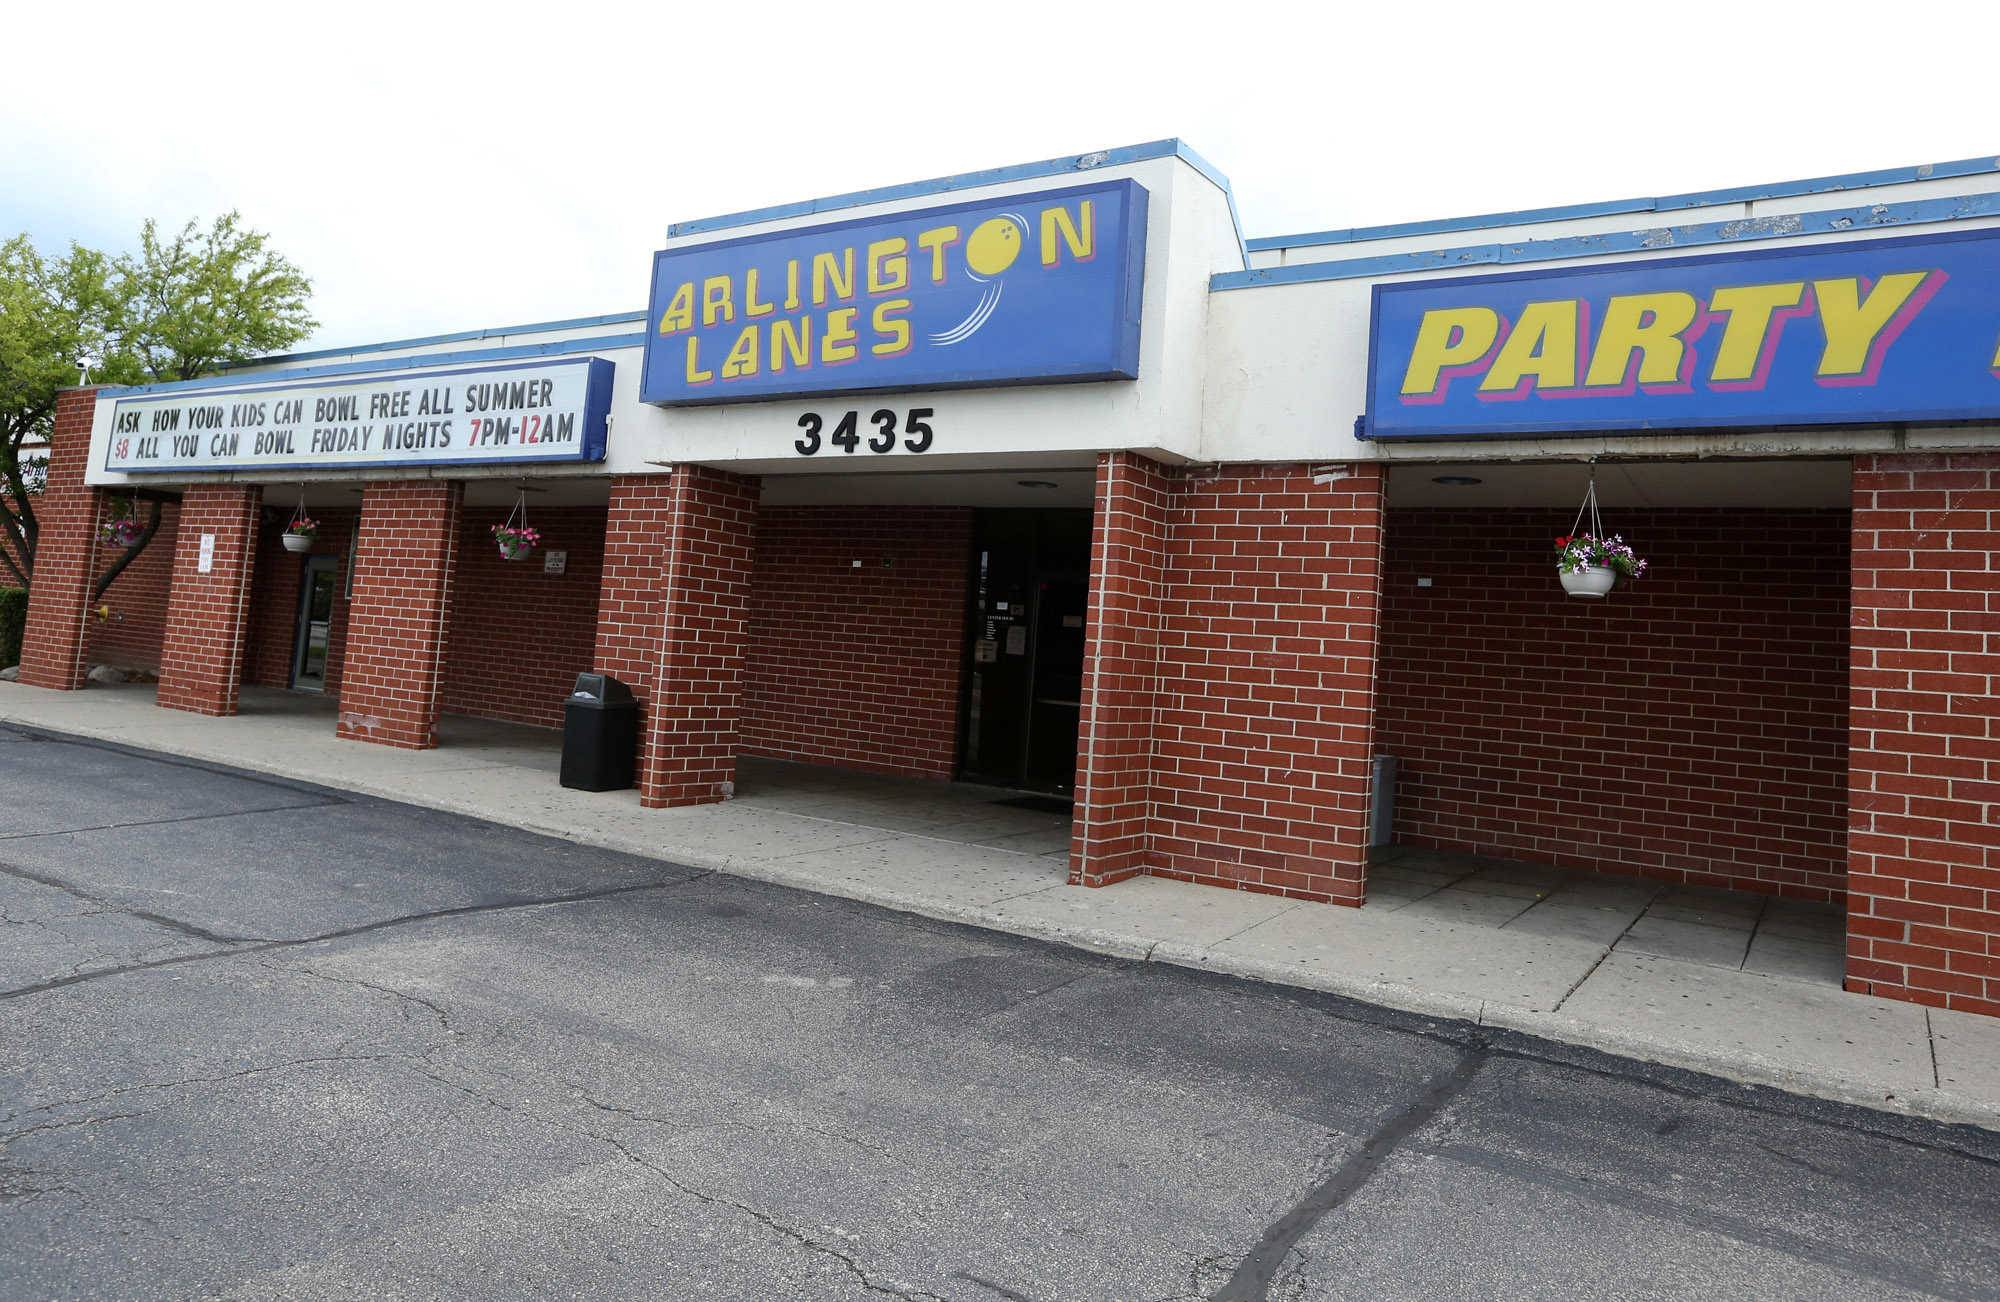 Arlington Heights village trustees voted this week to grant a new liquor license classification for Arlington Lanes, despite some concerns over measures the bowling alley's new owner says he might take to prevent underage patrons from obtaining alcohol.